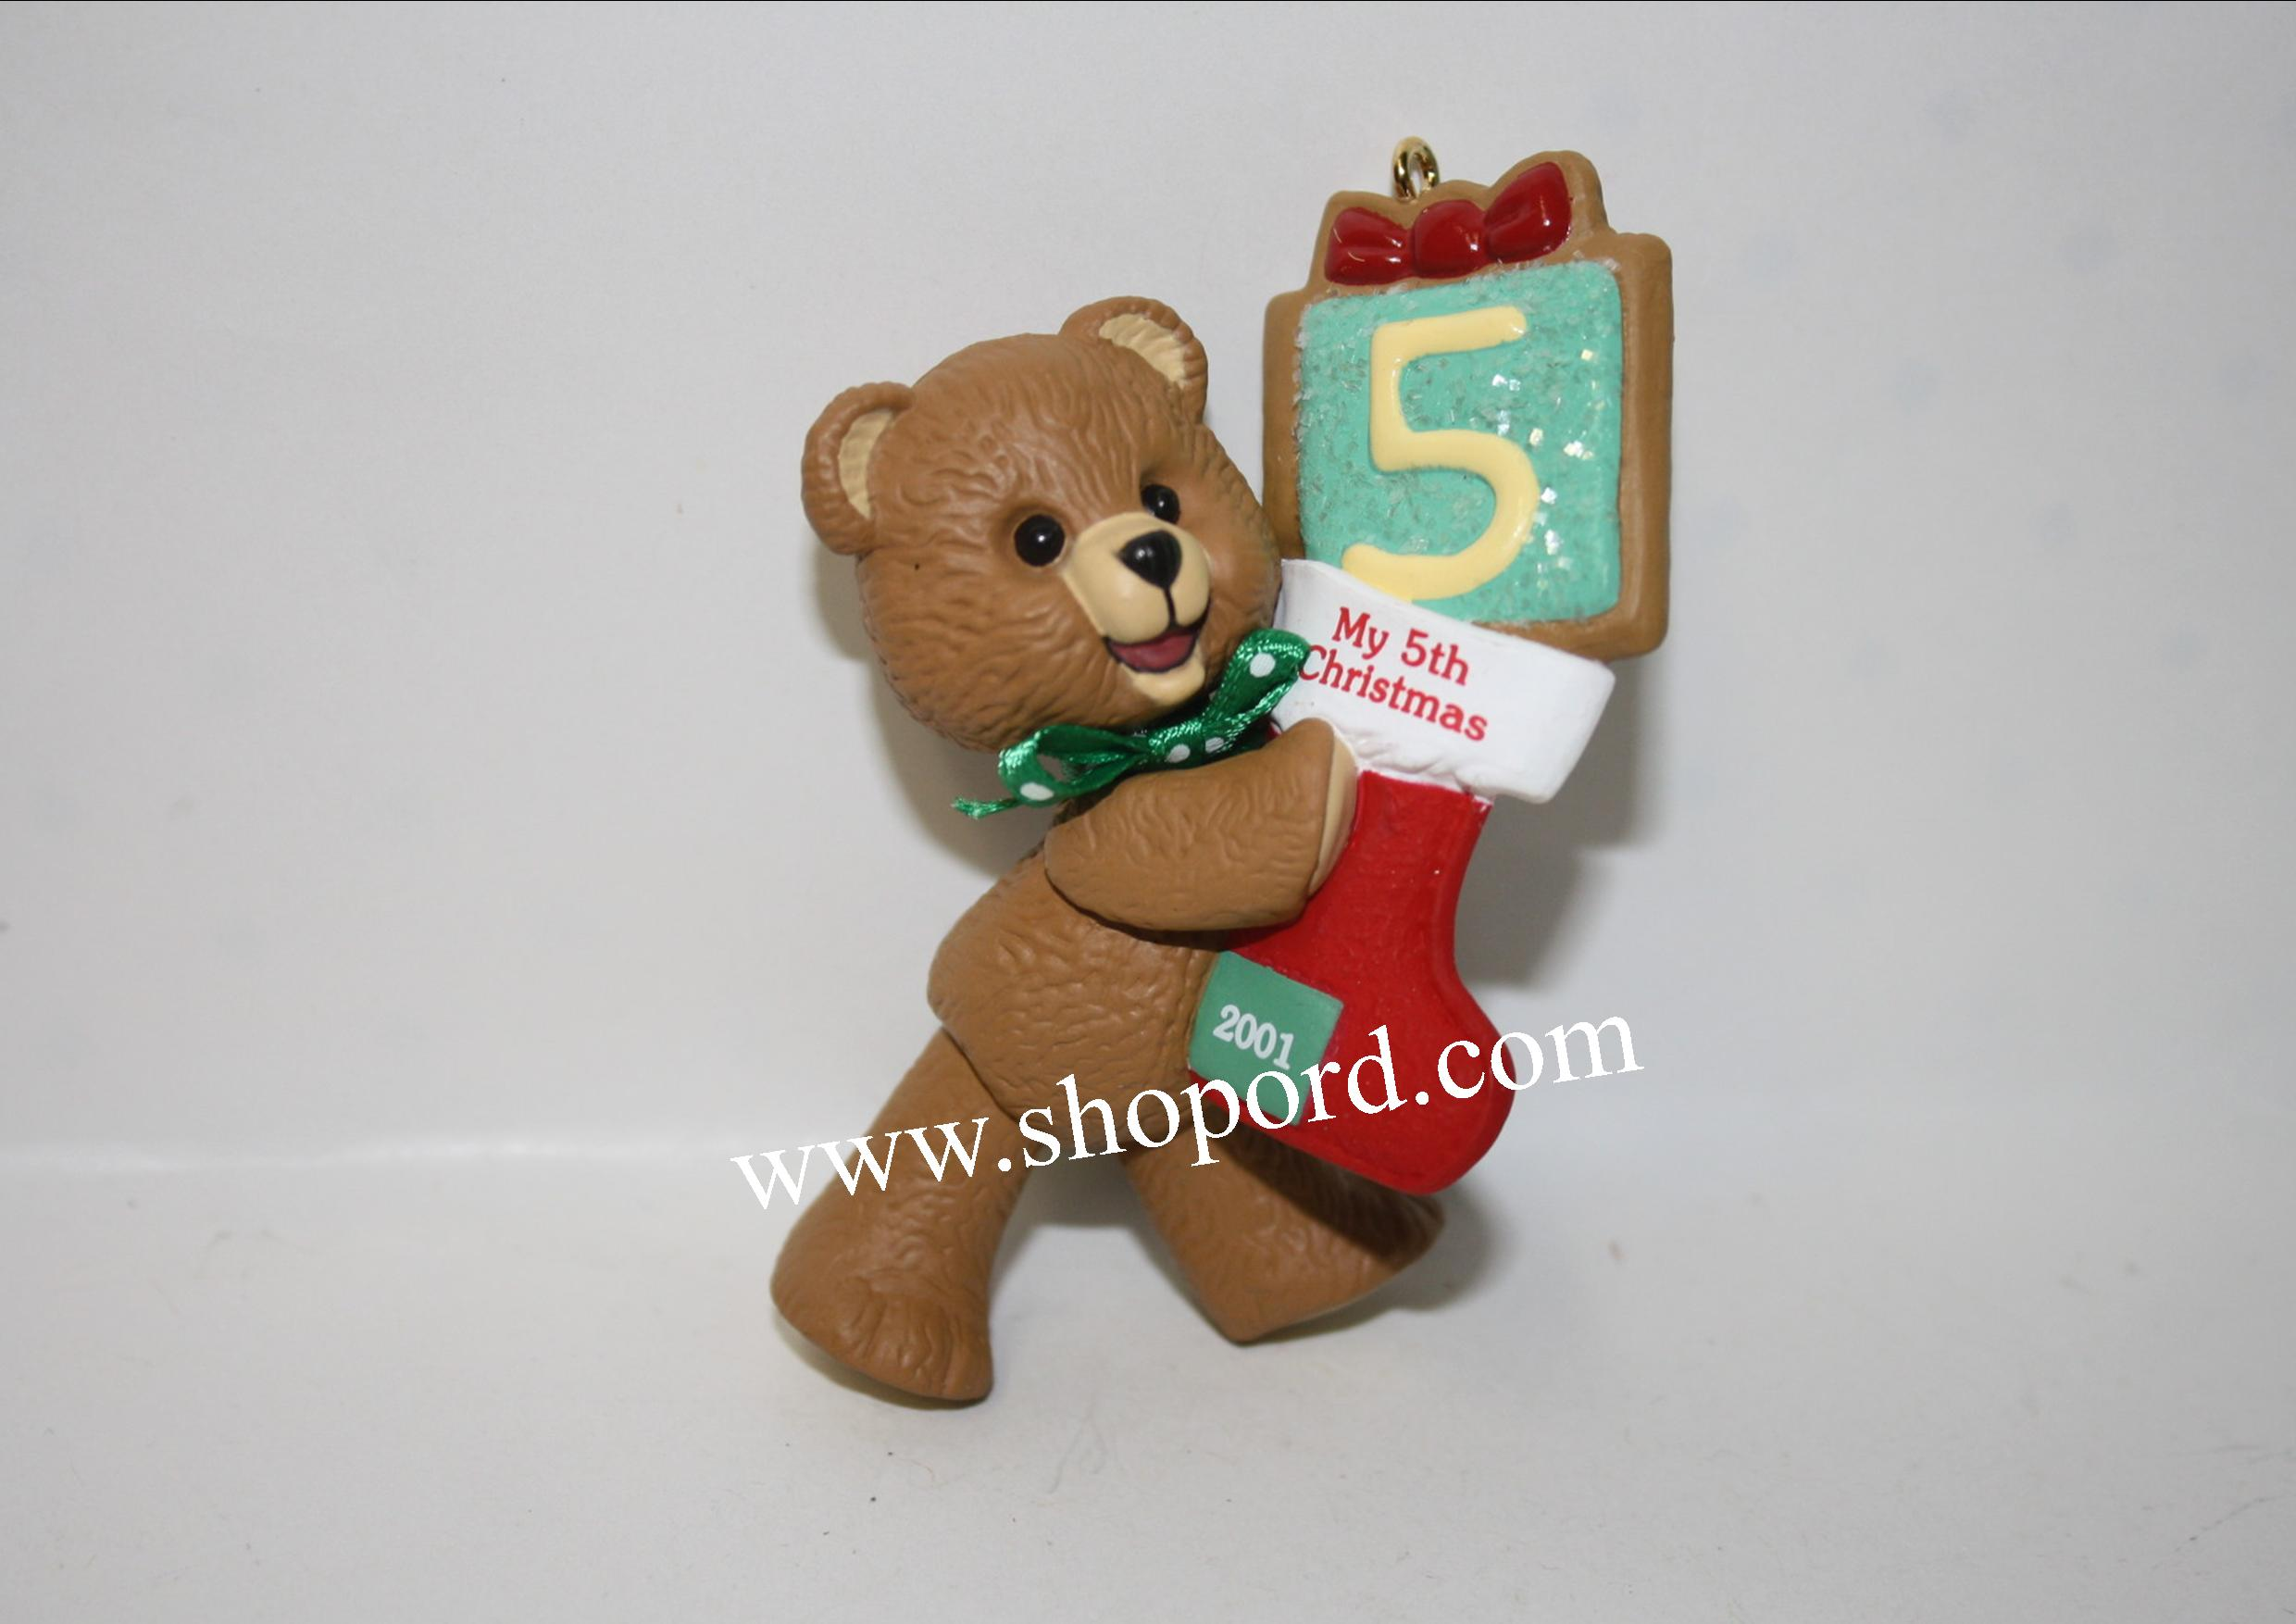 Hallmark 2001 Childs Fifth Christmas Ornament Childs Age Collection QX8395